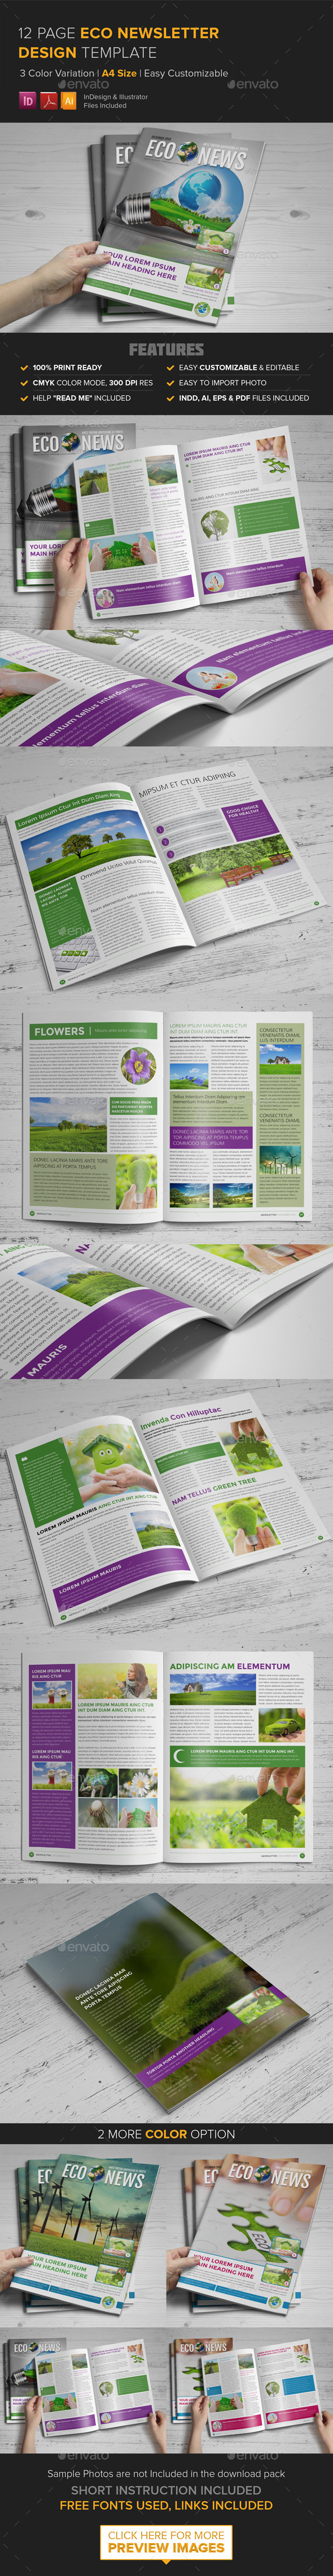 GraphicRiver 12 Page Eco Newsletter Template InDesign 9210656